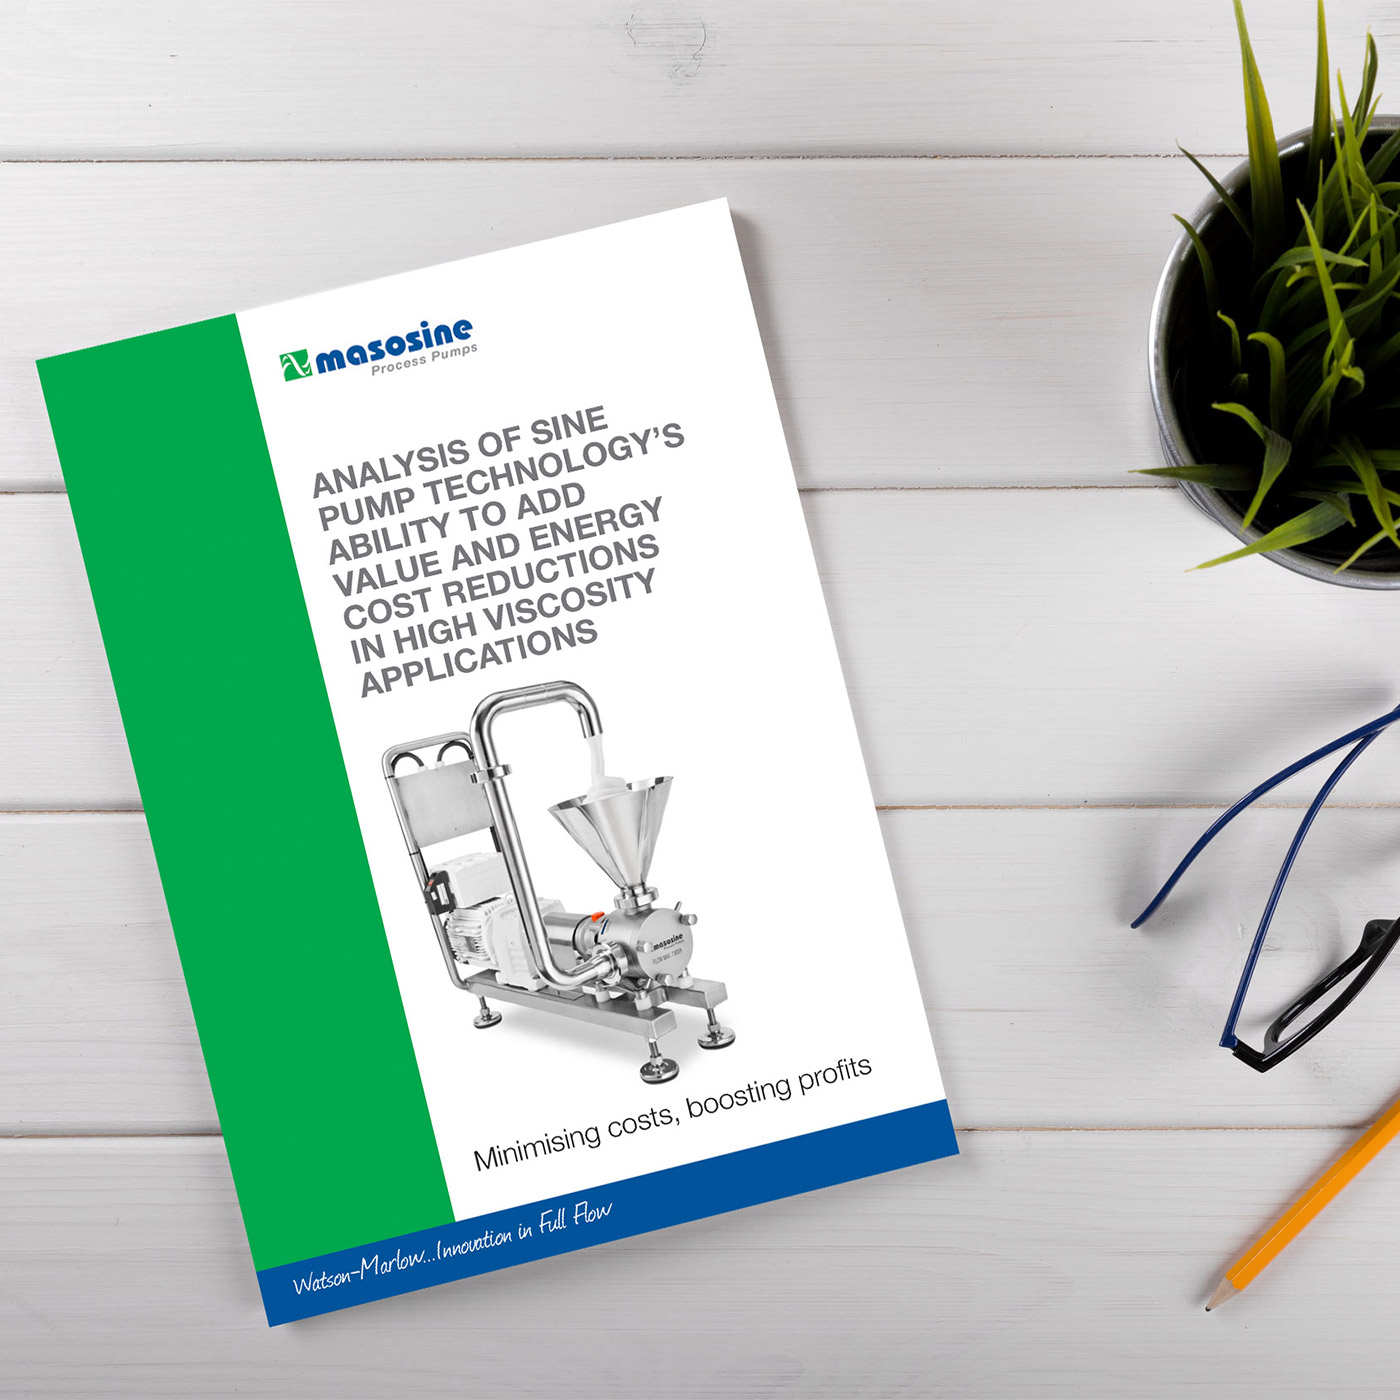 Watson-Marlow Fluid Technology Group - MasoSine sinusoidal pump brochure